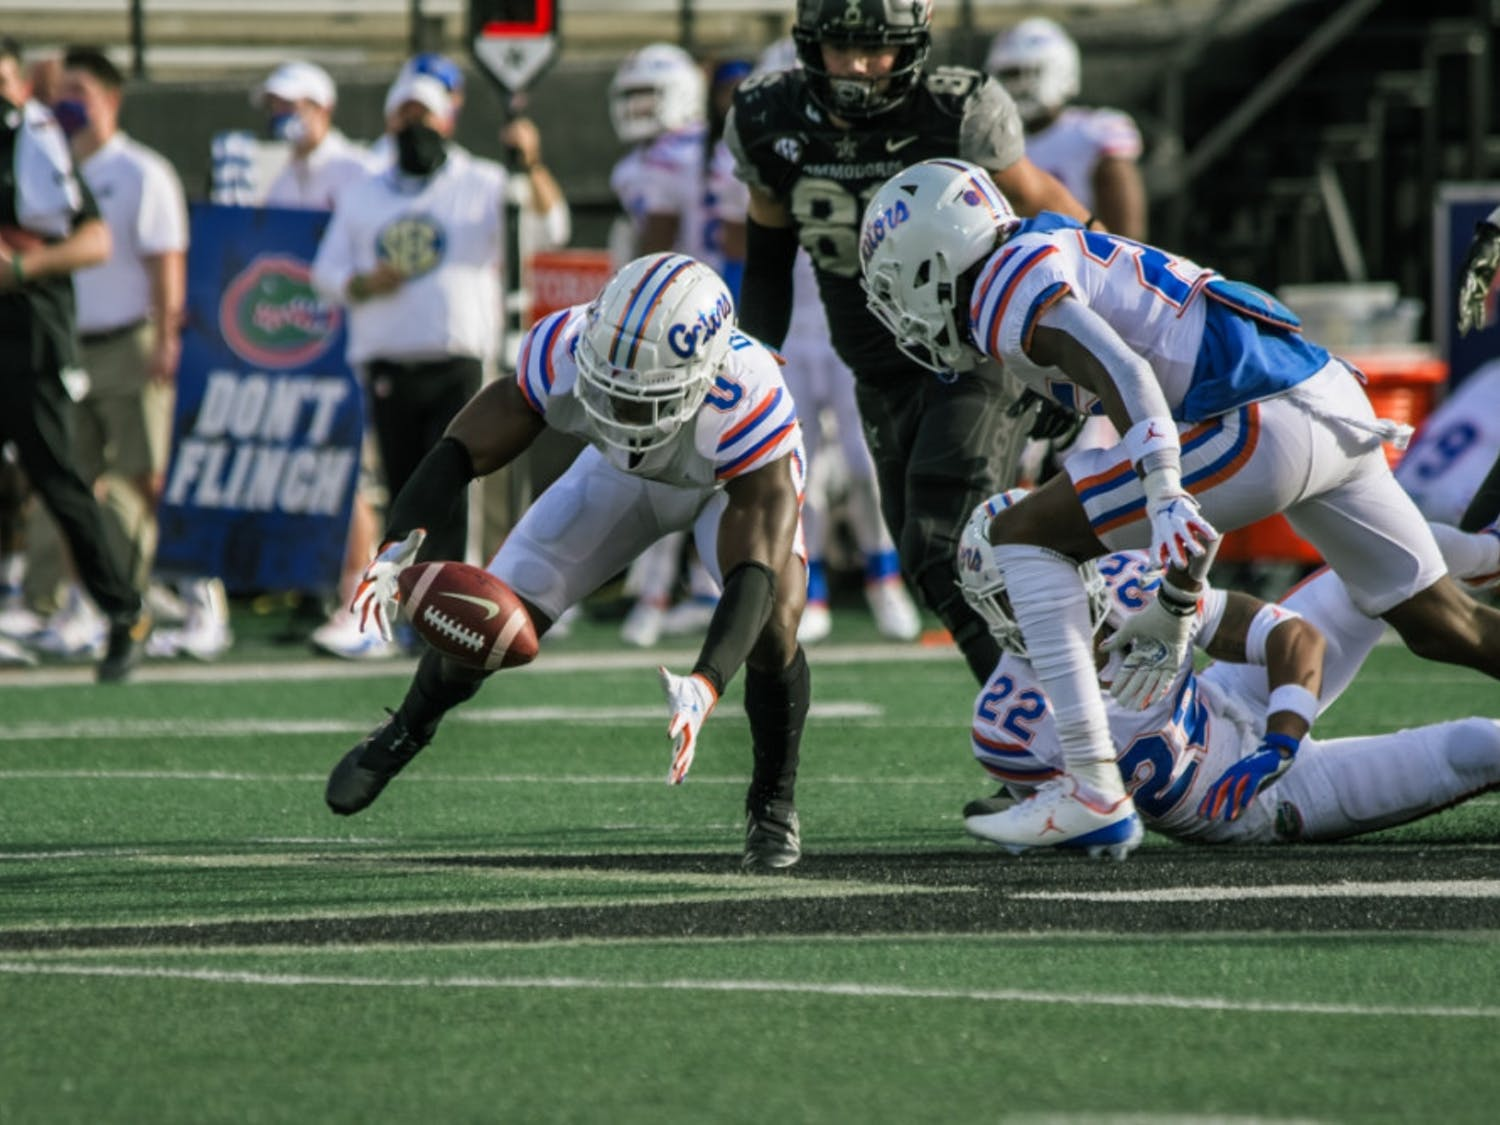 Gators safety Trey Dean III reaches for the football in Florida's game against Vanderbilt. The Gators hung 38 points on the Commodores in Nashville, Tennessee, on Saturday, winning their sixth game of the season.